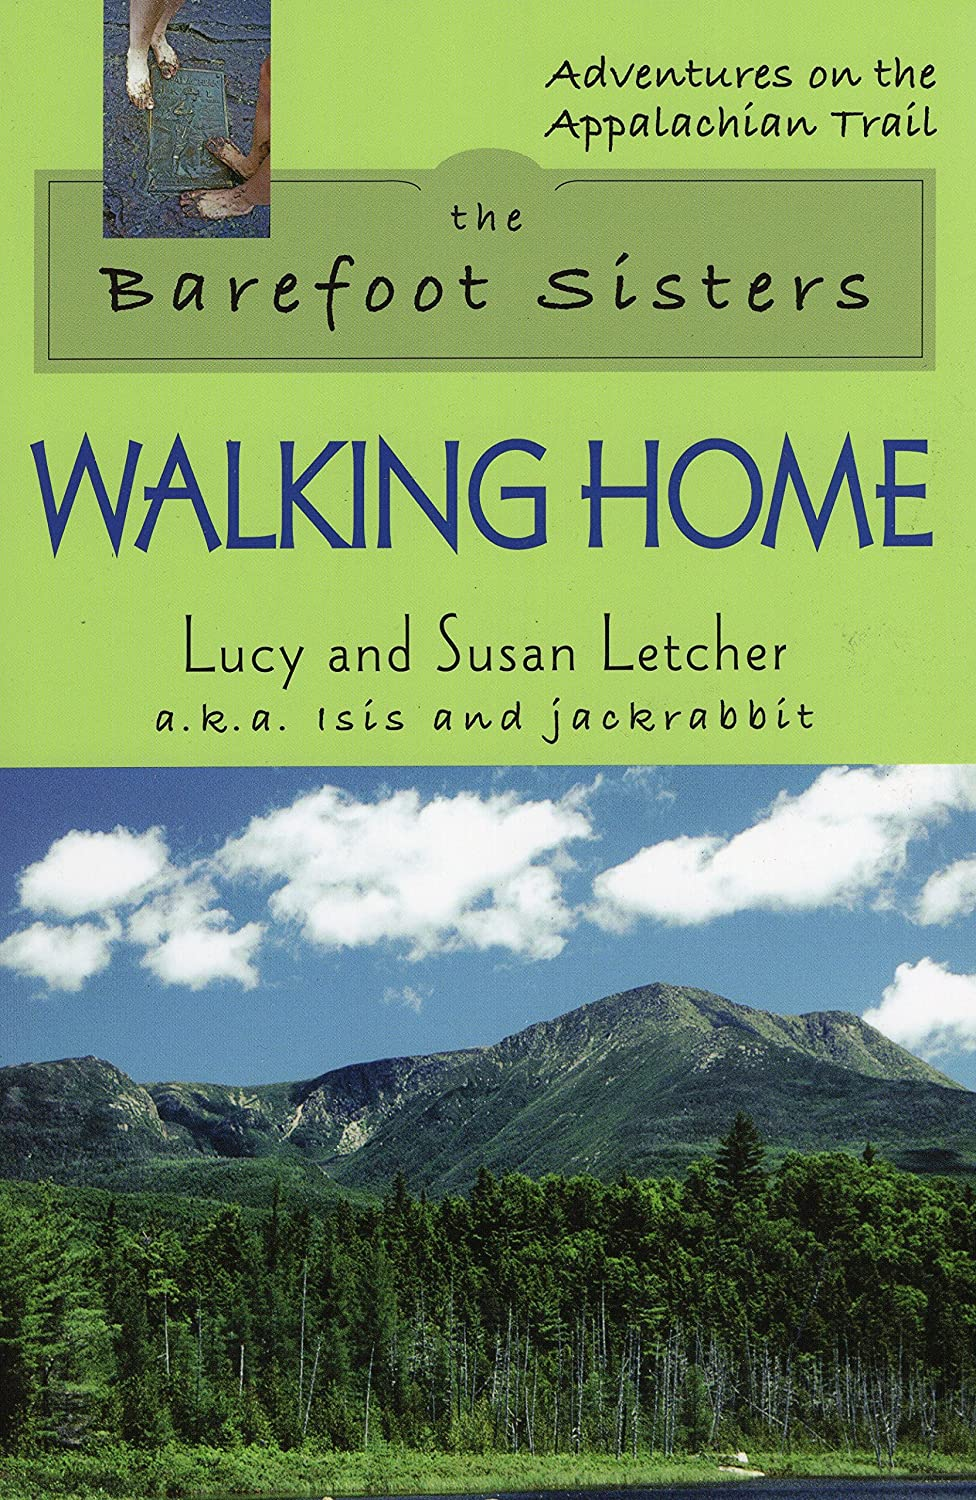 Solutions manual cogg hill camping equipment practice set ebook amazon the barefoot sisters walking home adventures on the amazon the barefoot sisters walking home adventures fandeluxe Image collections